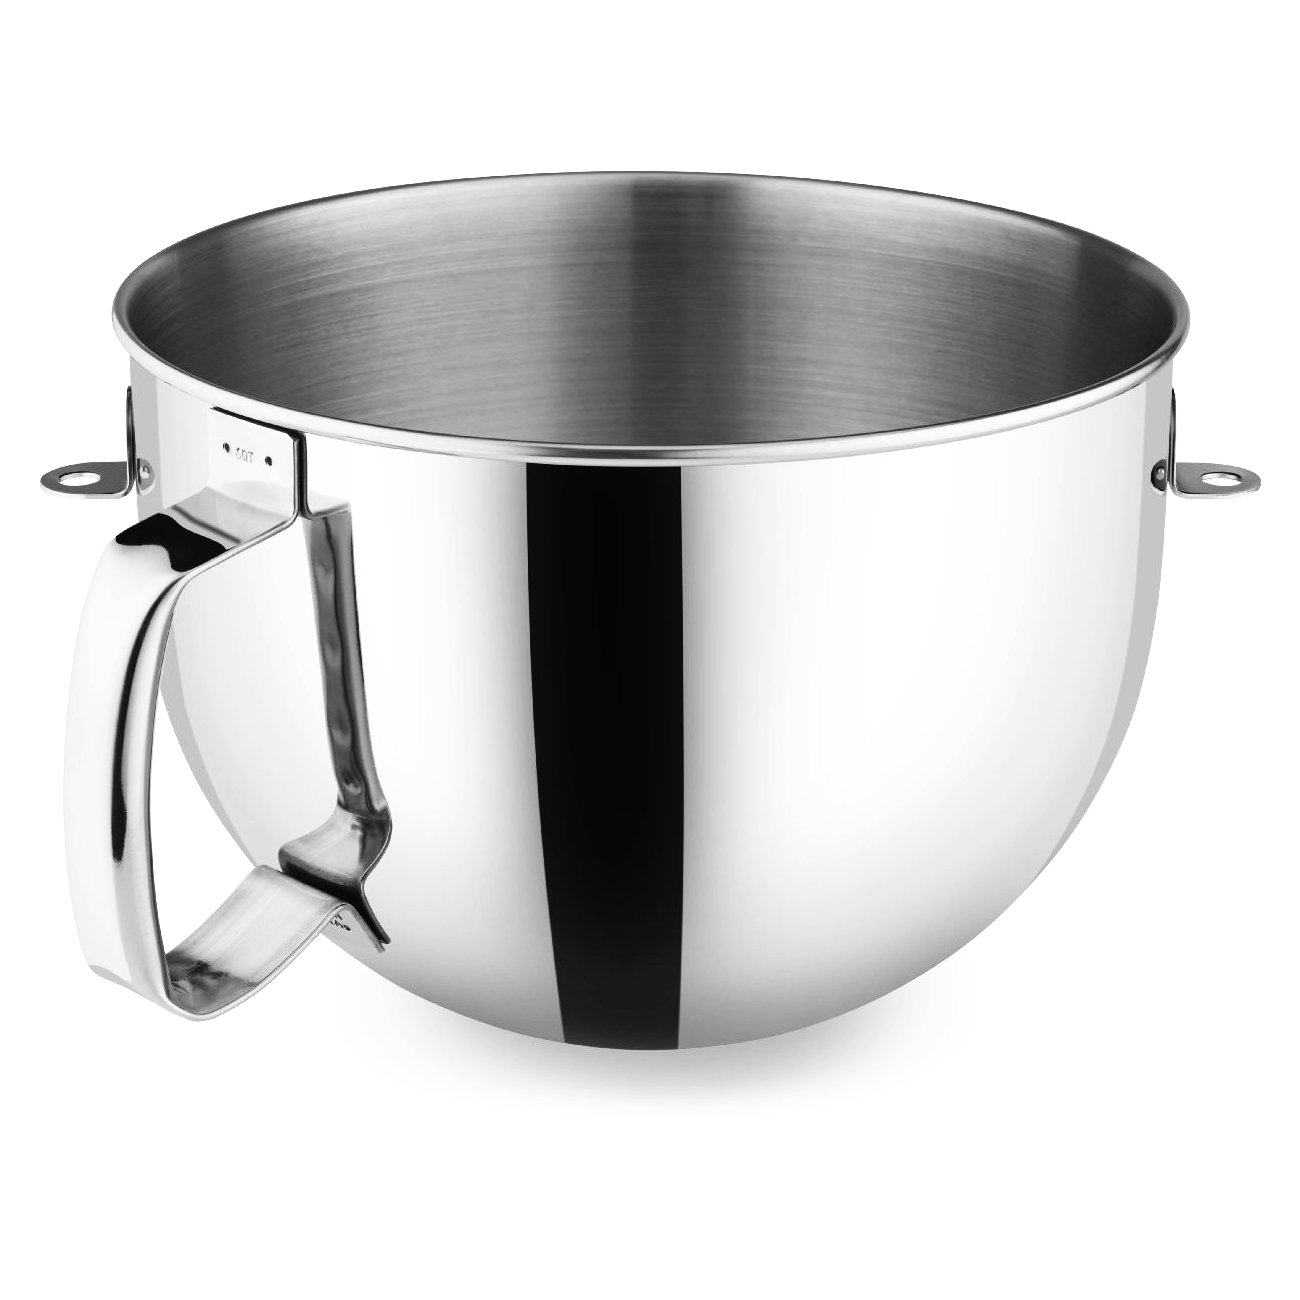 KitchenAid 6-qt. Mixing Bowl with Ergonomic Handle.